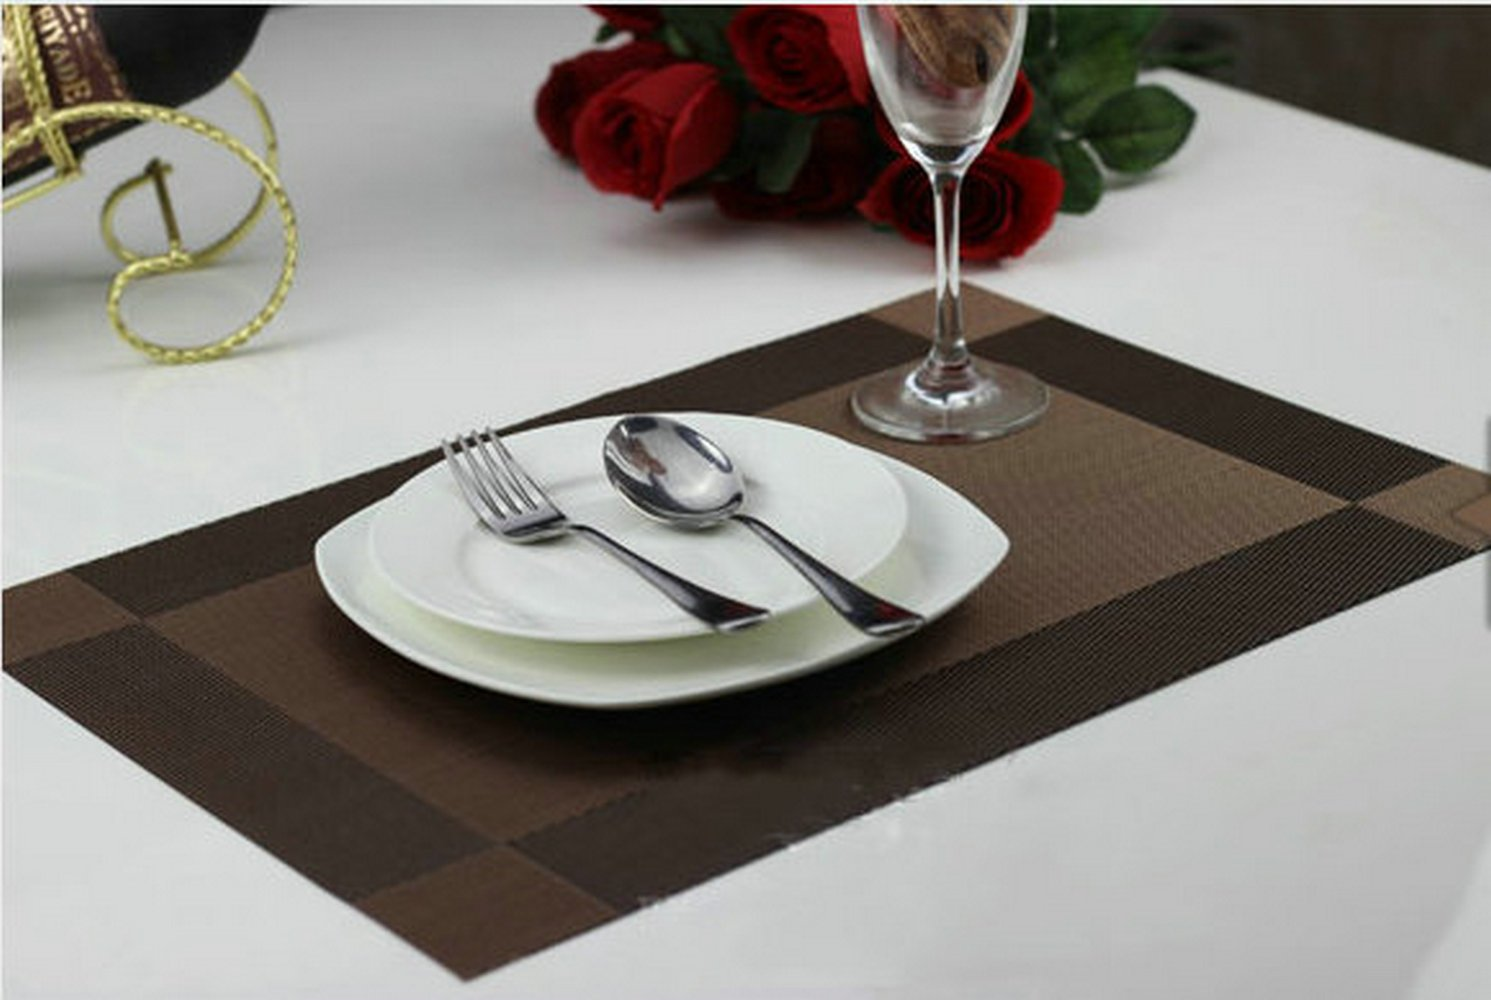 Amazon.com: Ayygift High Quality Dining Room Placemats Heat ...